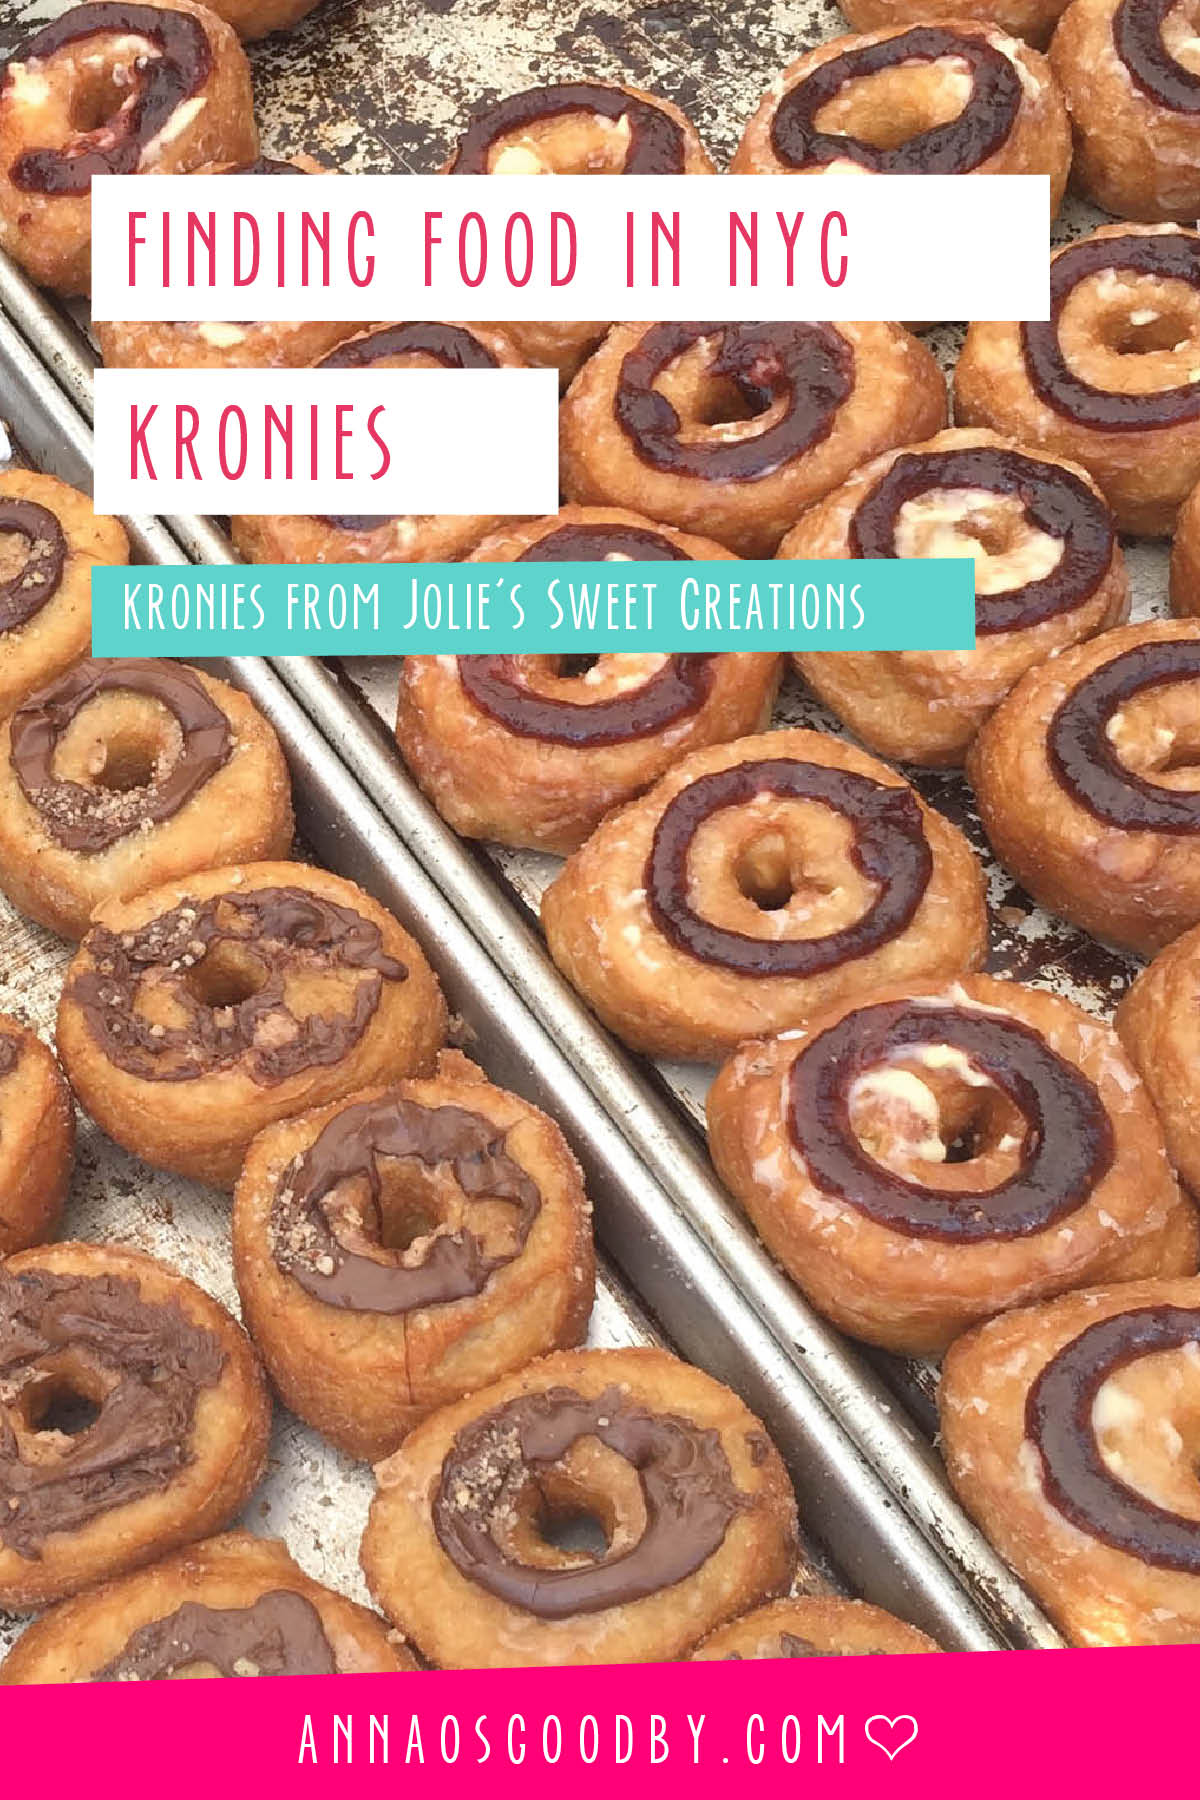 Anna Osgoodby Life + Design :: Finding Food in NYC Jolie's Sweet Creations' Kronies